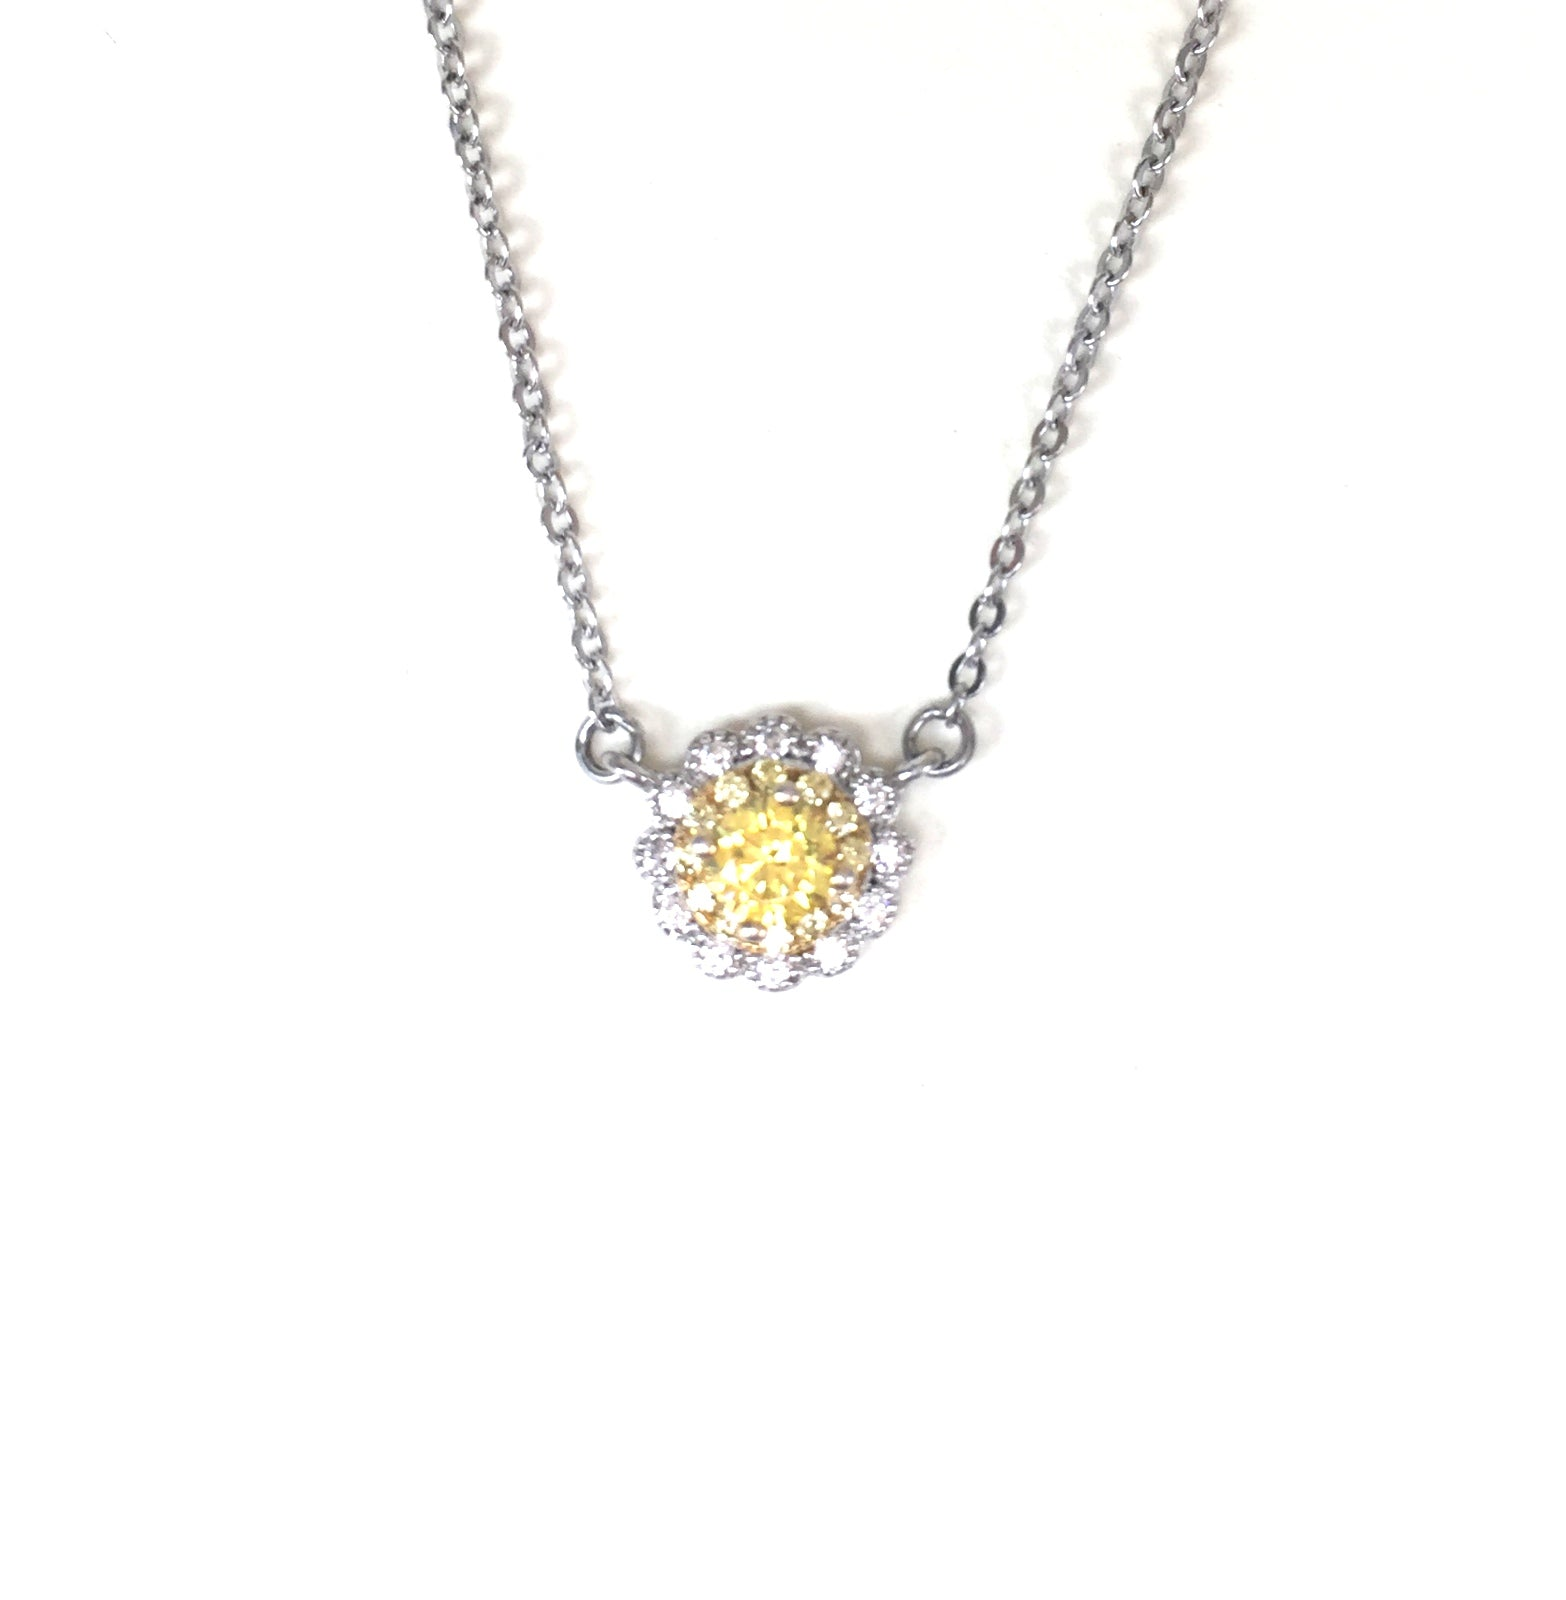 CLASSIC YELLOW STONE PAVE CZ STERLING SILVER NECKLACE